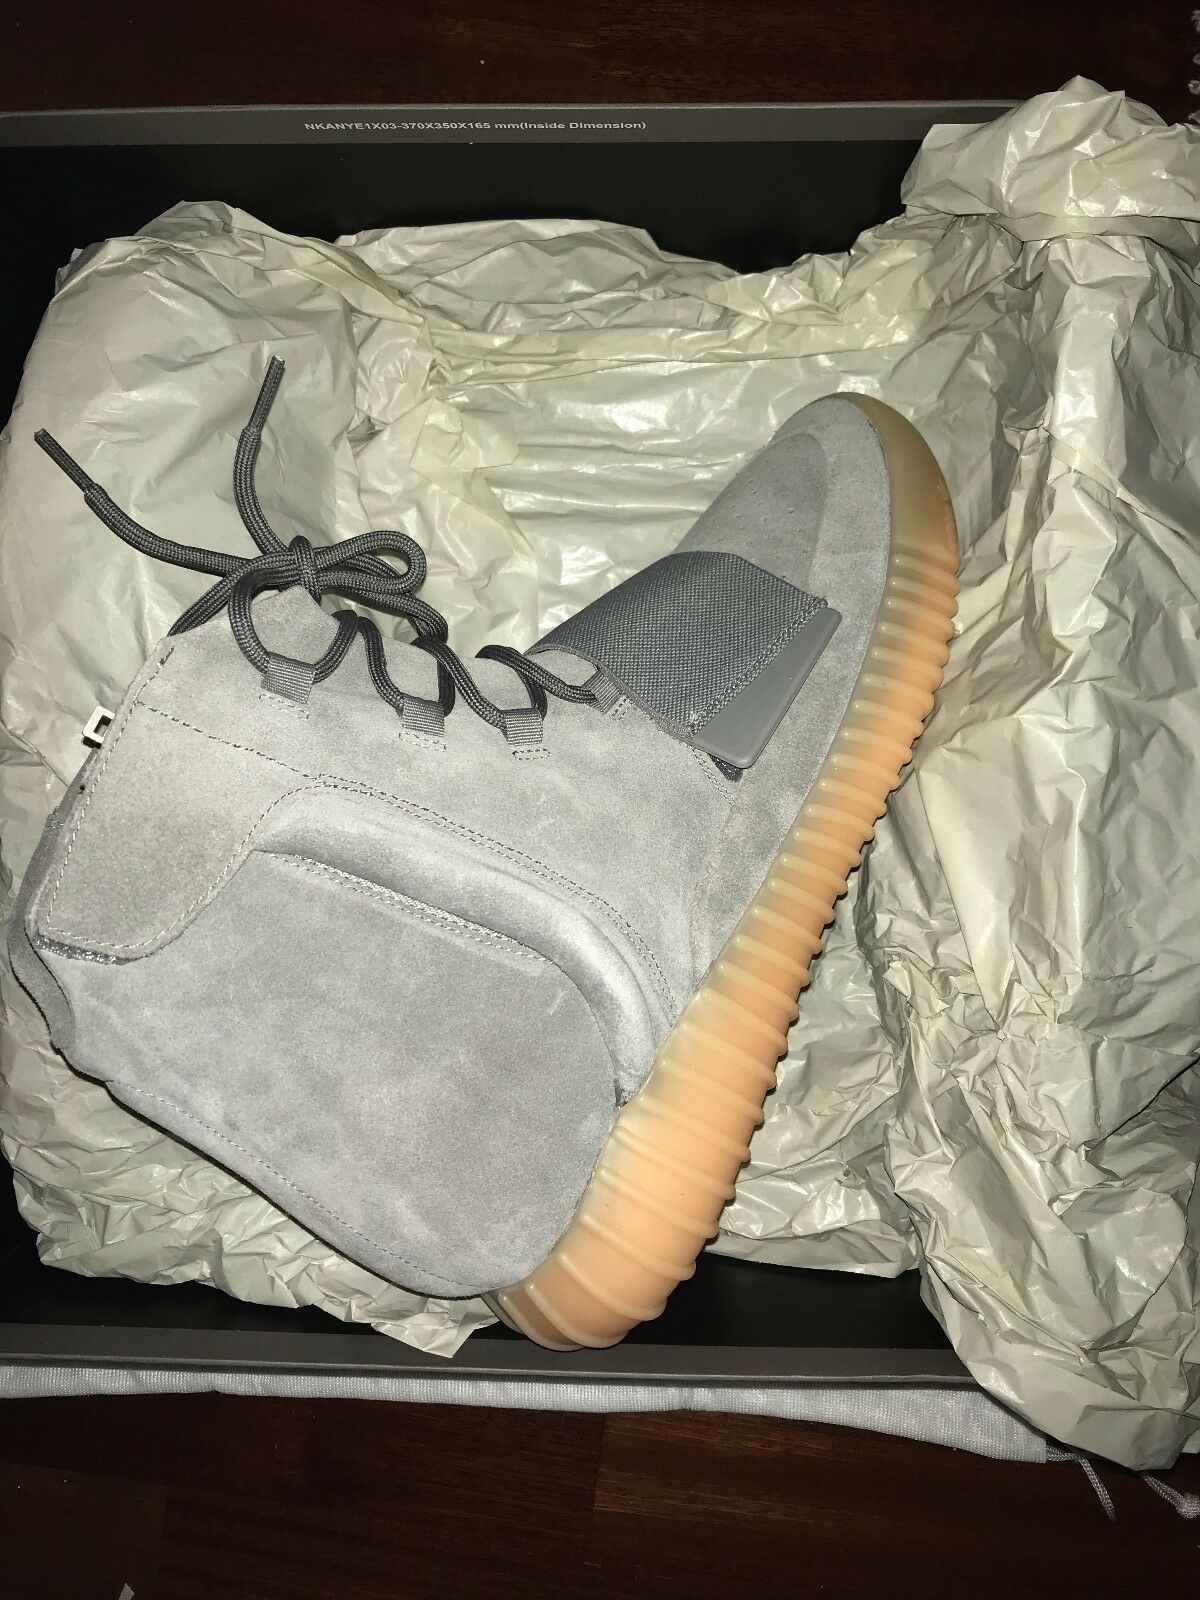 DS 100% authentique Adidas Yeezy Boost 750 Gris Gum Glow Taille 13.5